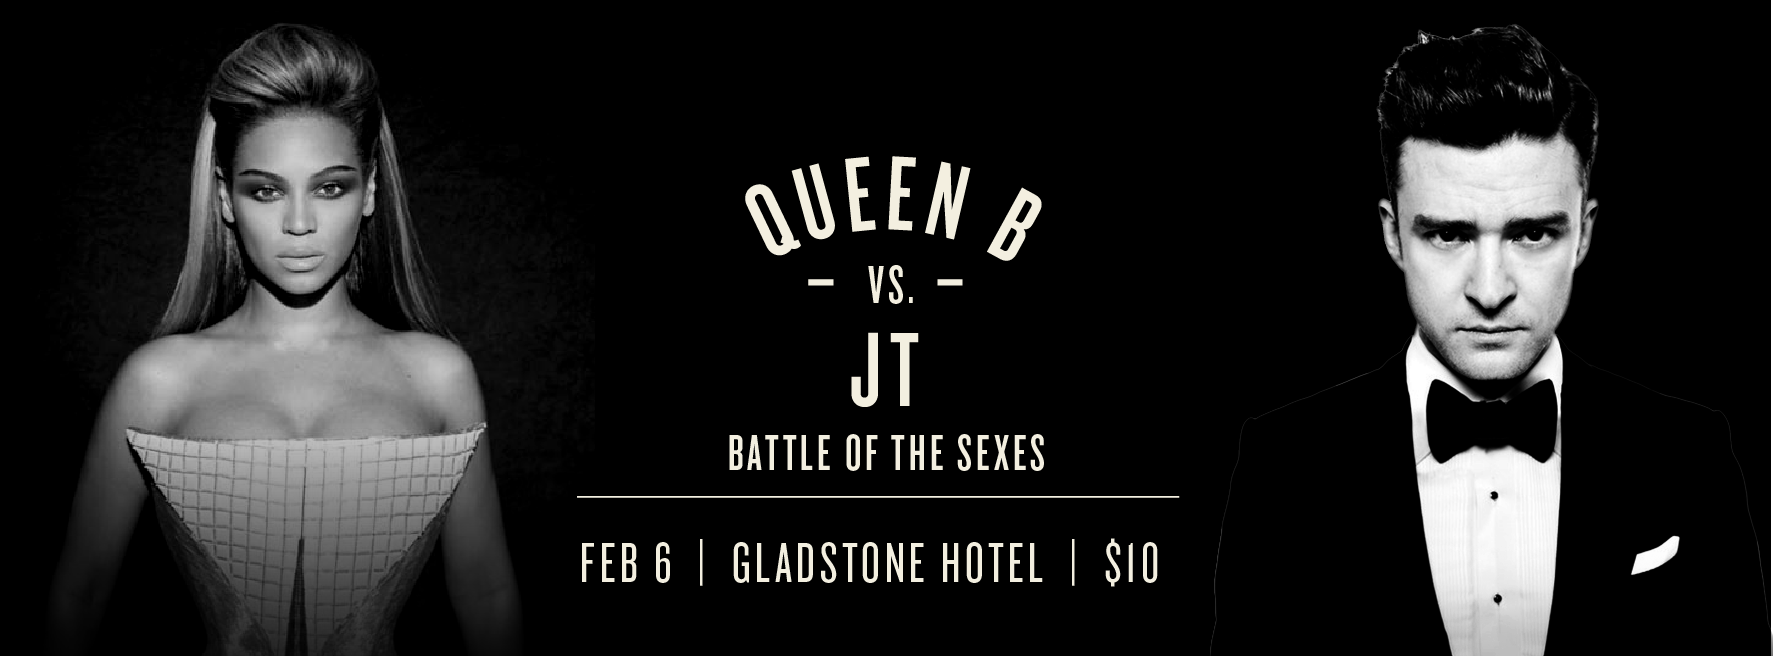 Beyonce vs. JT Photo via FACEBOOK